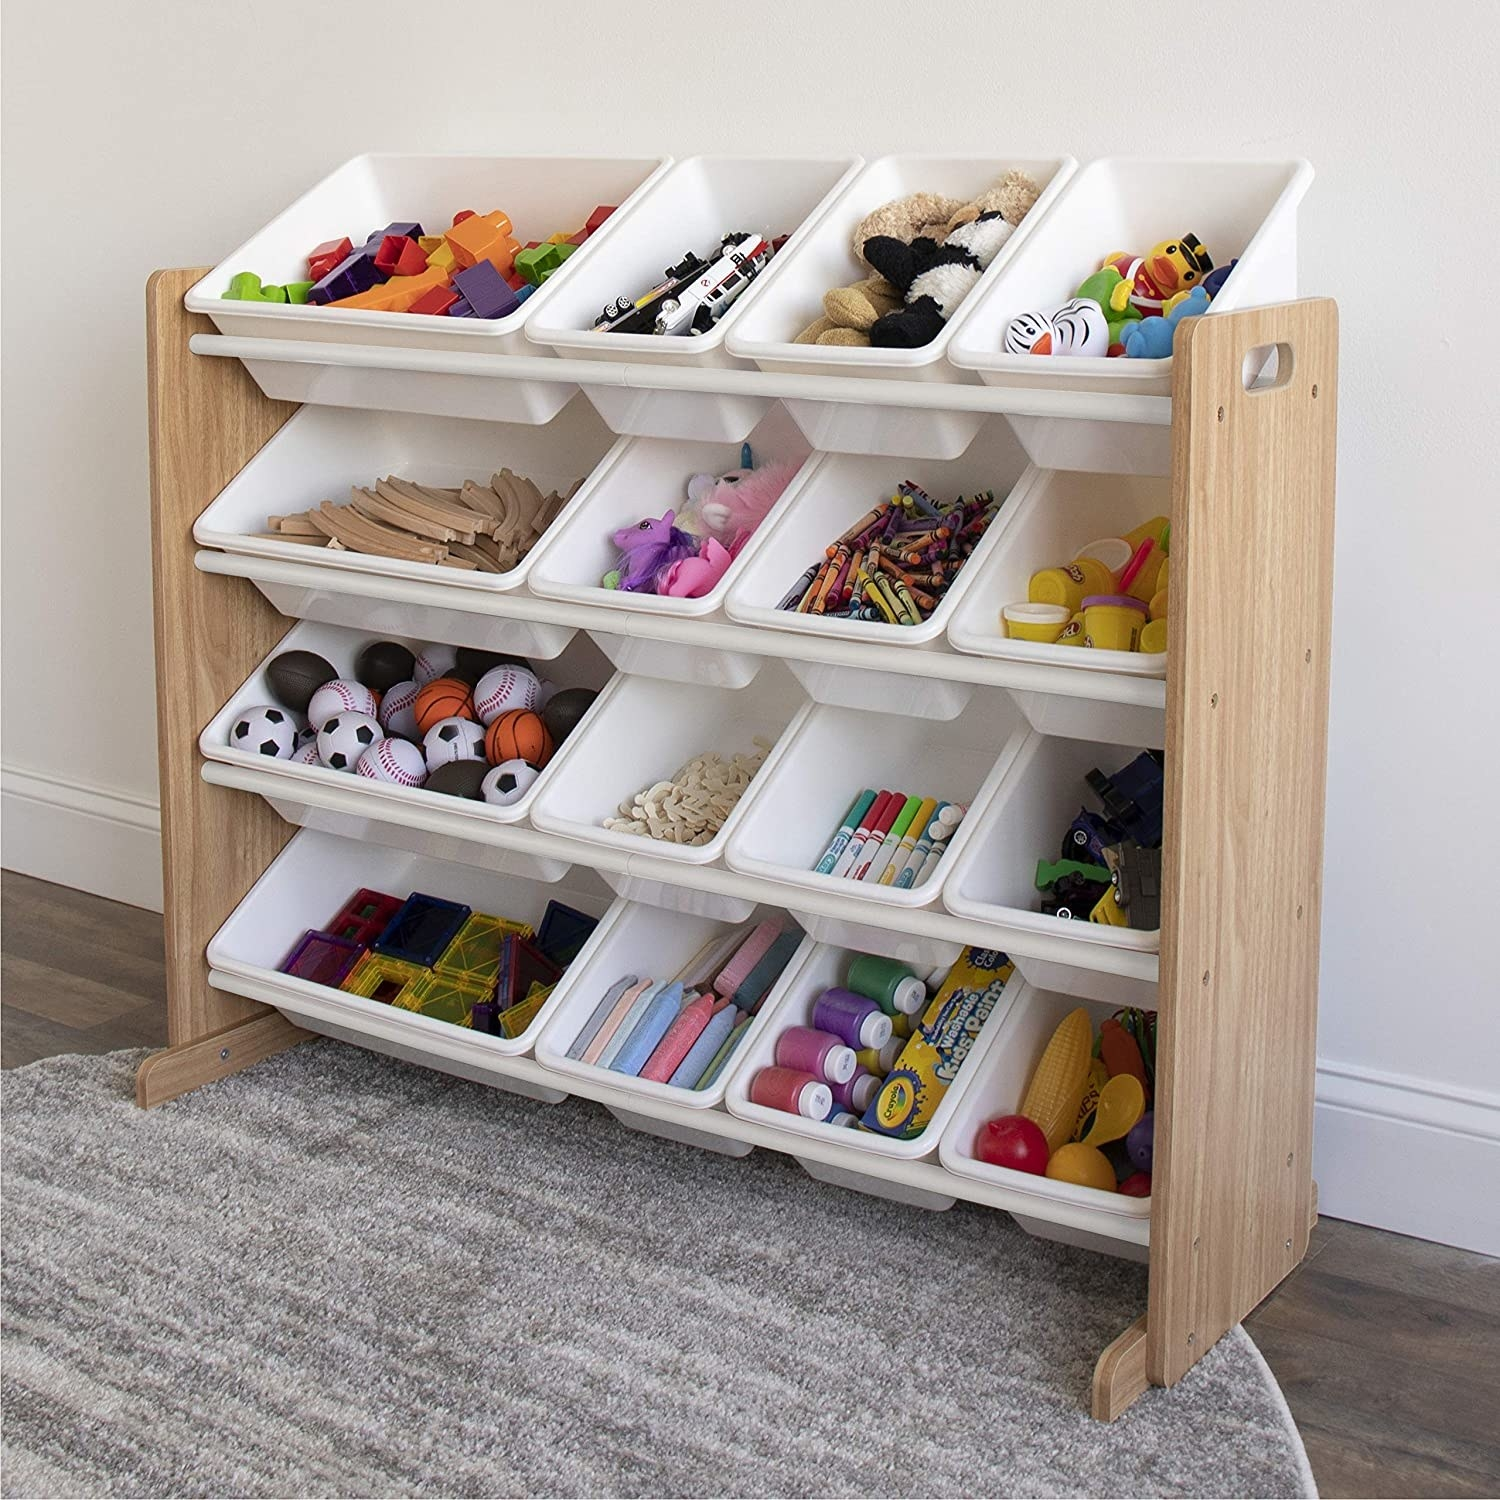 Natural wood frame with white plastic containers. There are four shelves with several containers on each shelf.